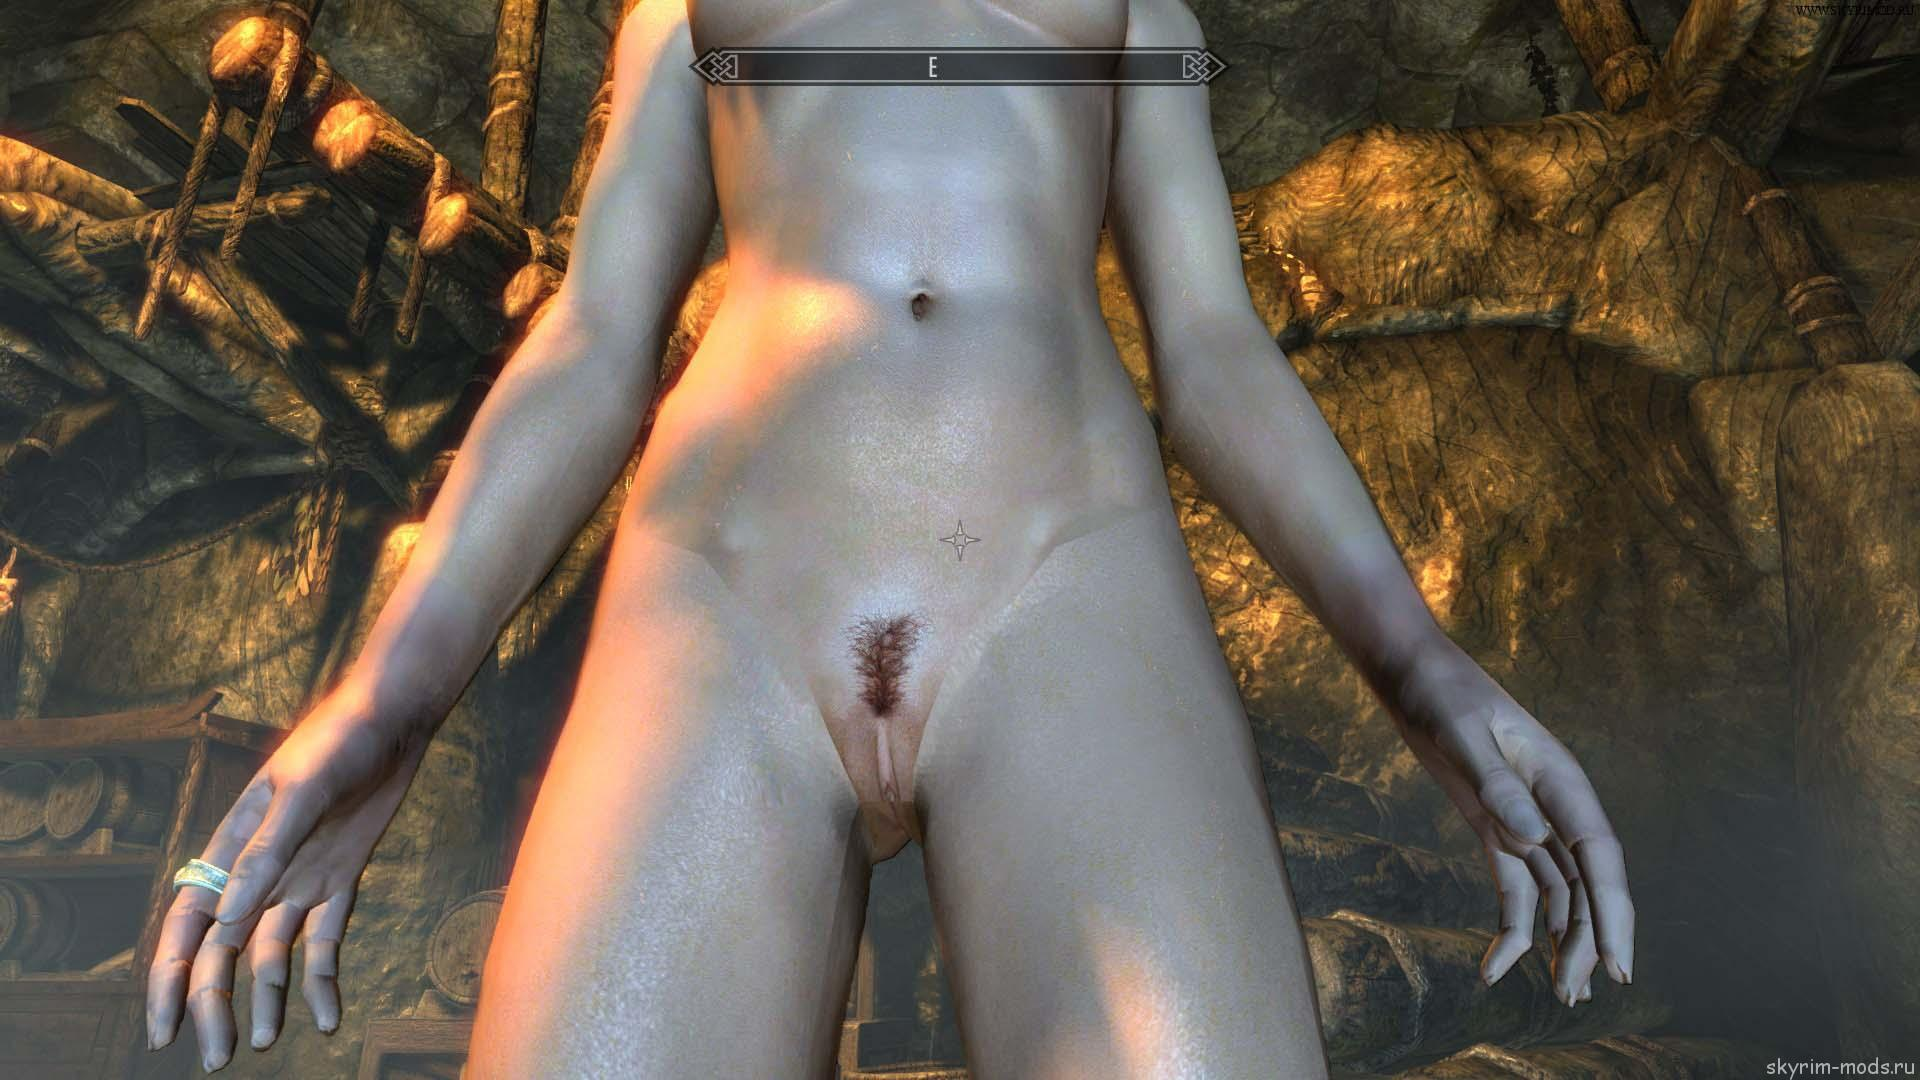 Femal nude skyrim sex videos